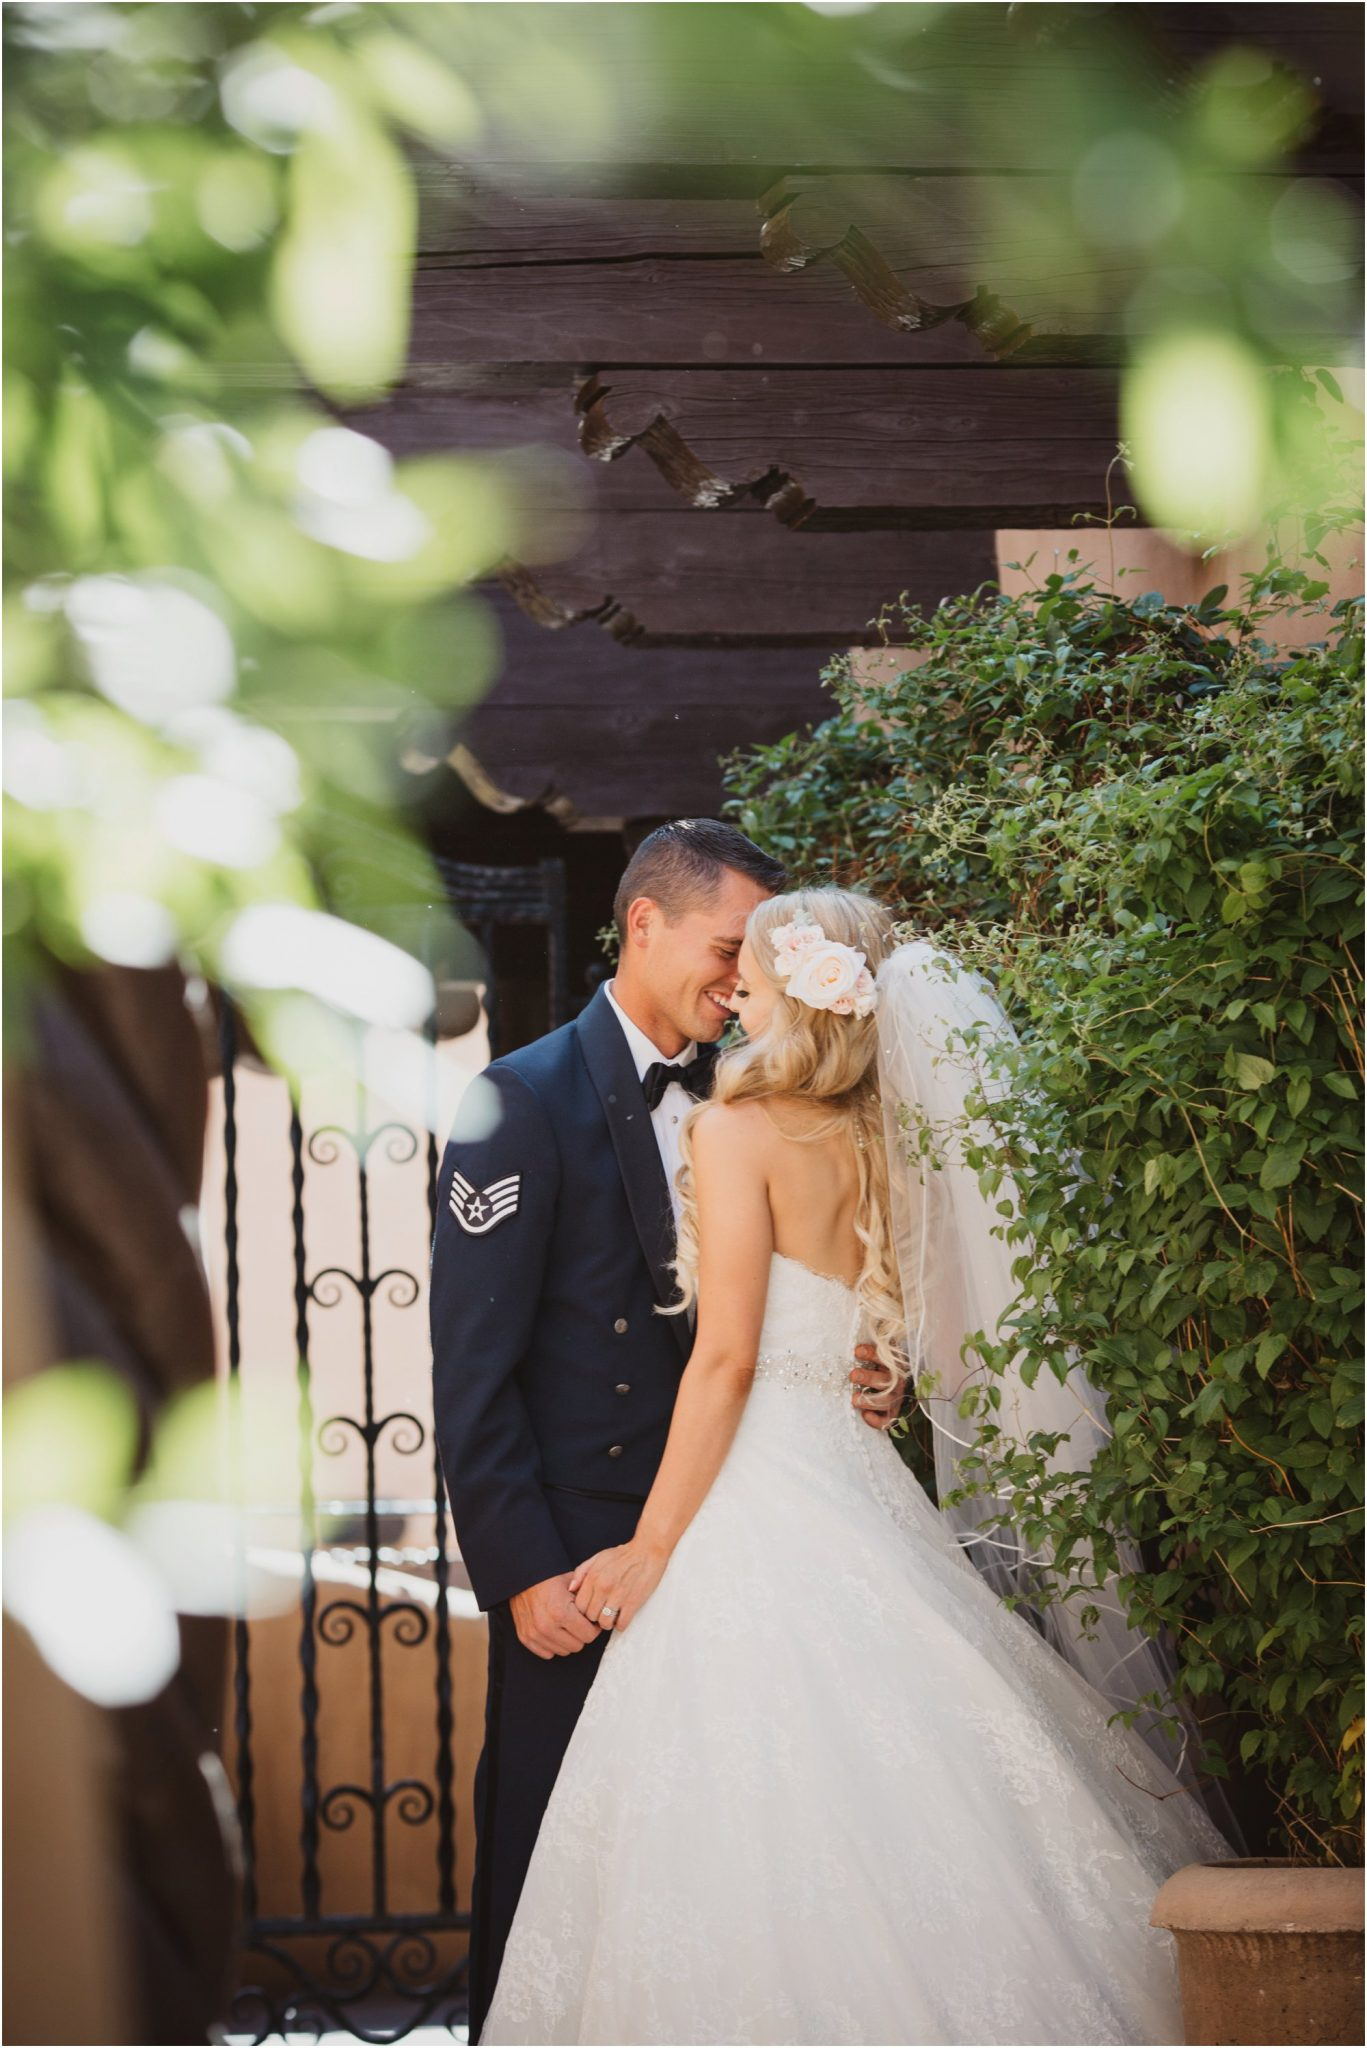 New Mexico, Albuquerque, Santa Fe, wedding photography, La Fonda wedding pictures